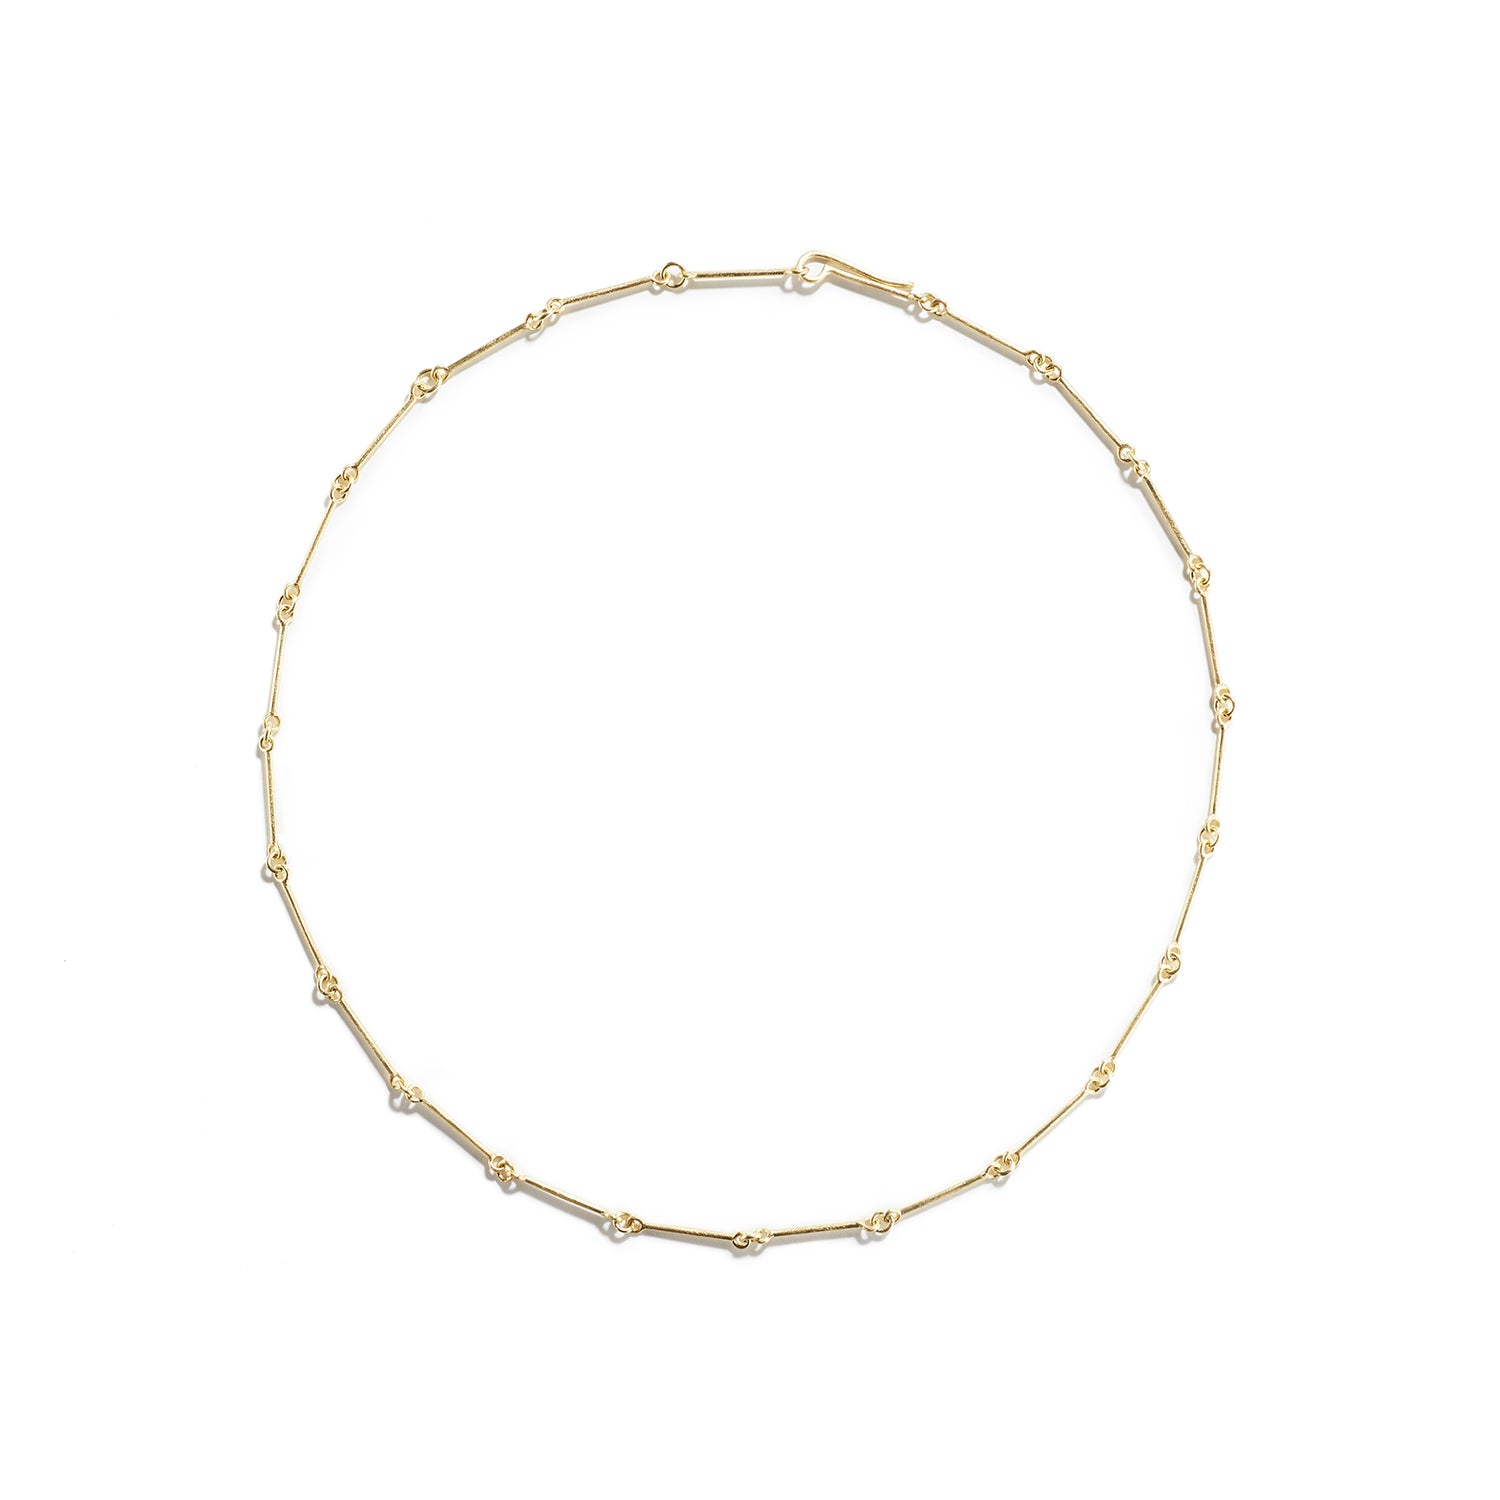 Segmented Gold Necklace